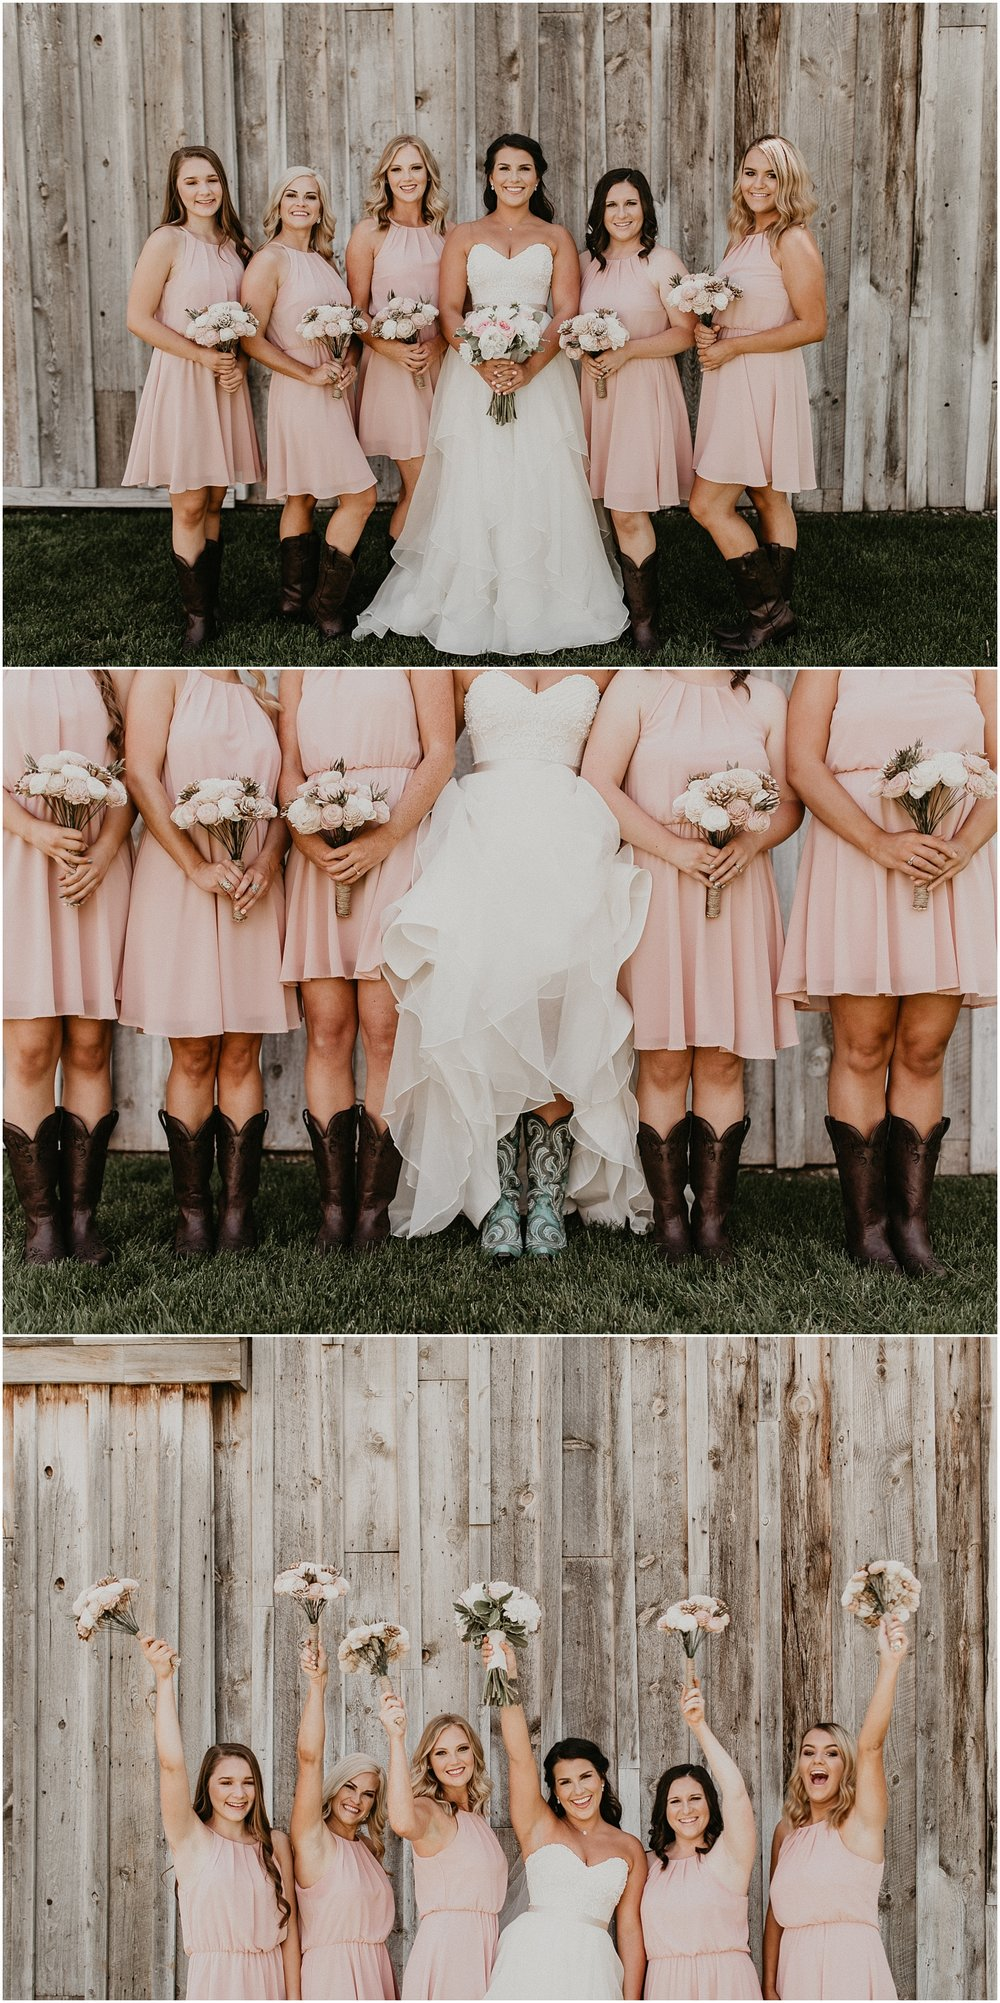 Boise Wedding Photographer Makayla Madden Photography Idaho Bride Boise Country Chic Wedding Still Water Hollow Boise Idaho Wedding Venue Bridesmaids Posing Ideas Boots Rustic Wedding inpsiration